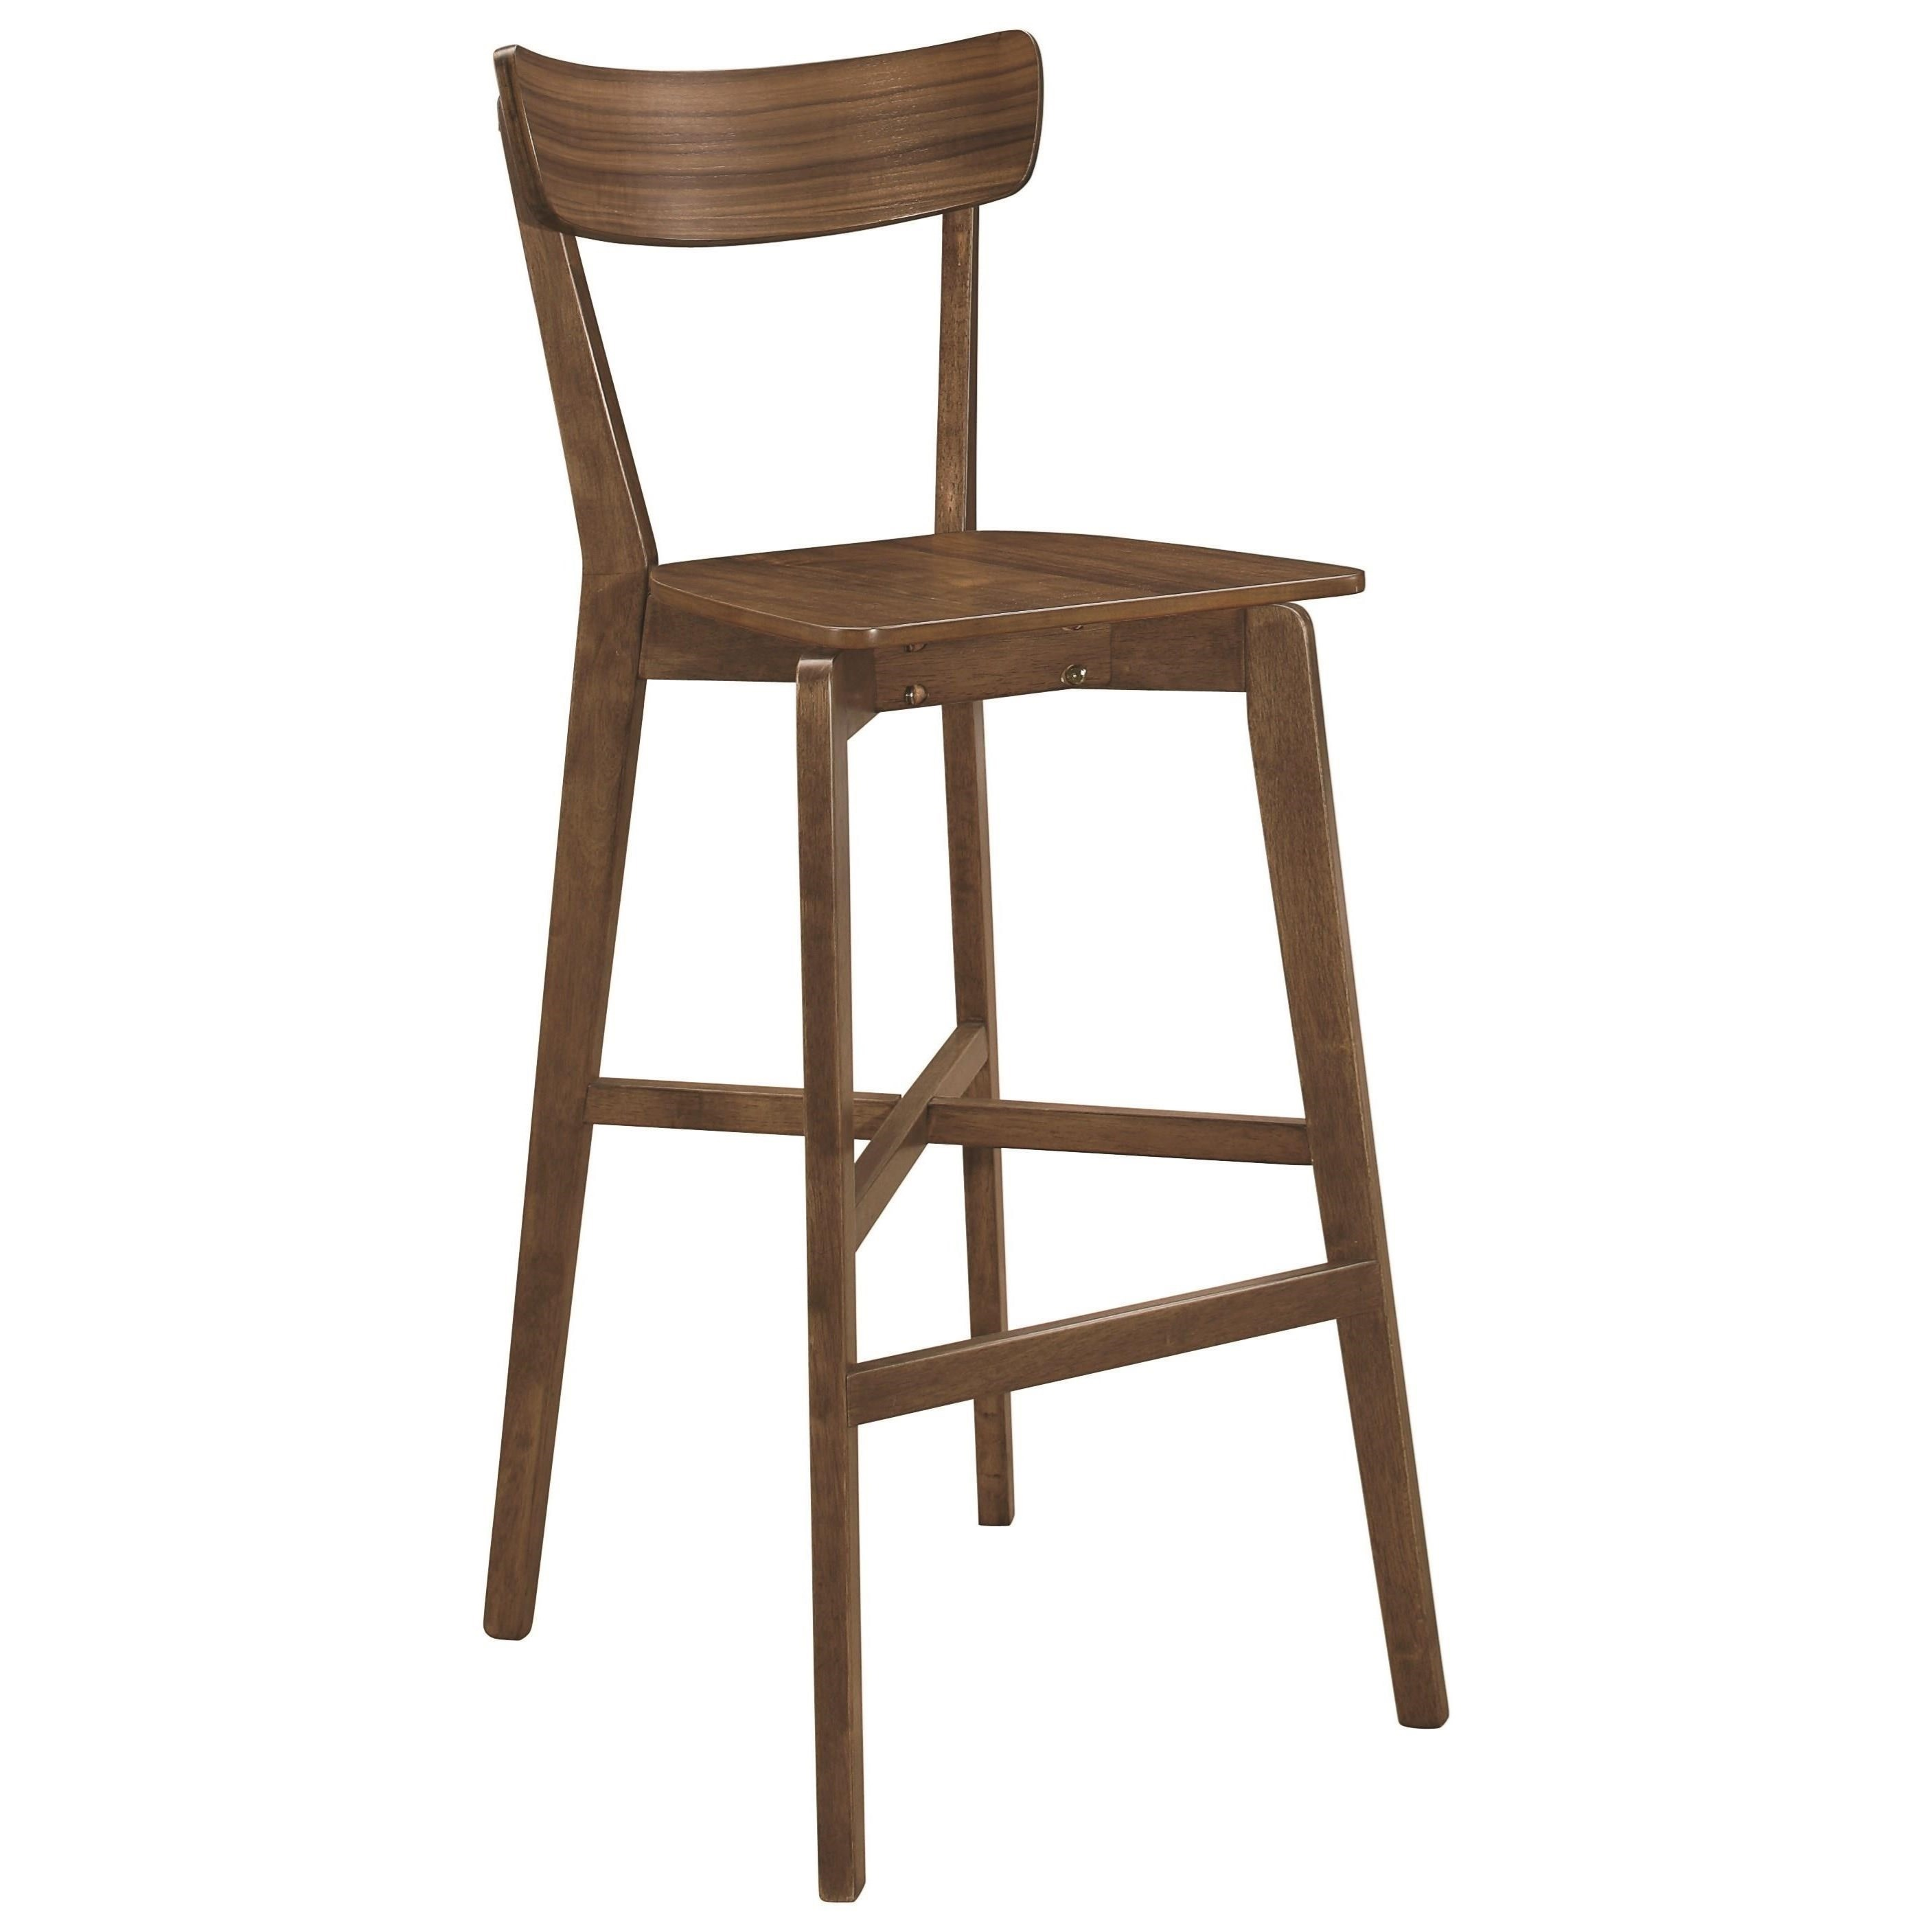 Coaster Dining Chairs and Bar Stools Bar Stool - Item Number: 101449